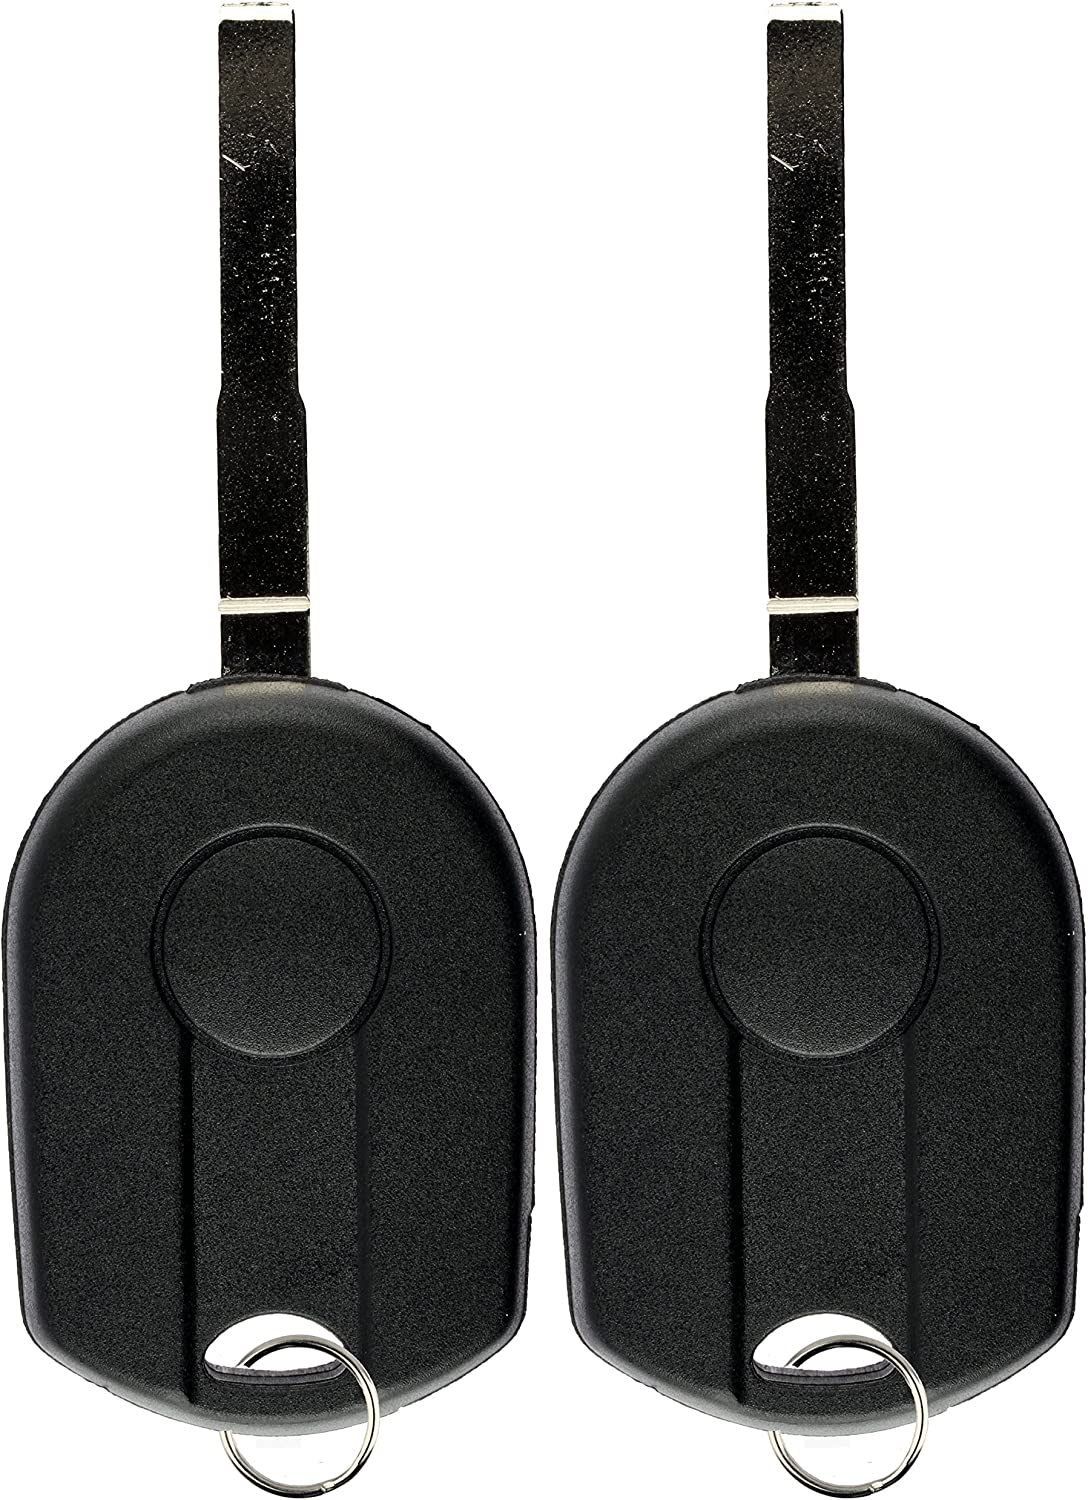 KeylessOption Keyless Entry Remote Car Ignition High Security Key Fob Replacement for 164-R8007 Pack of 2